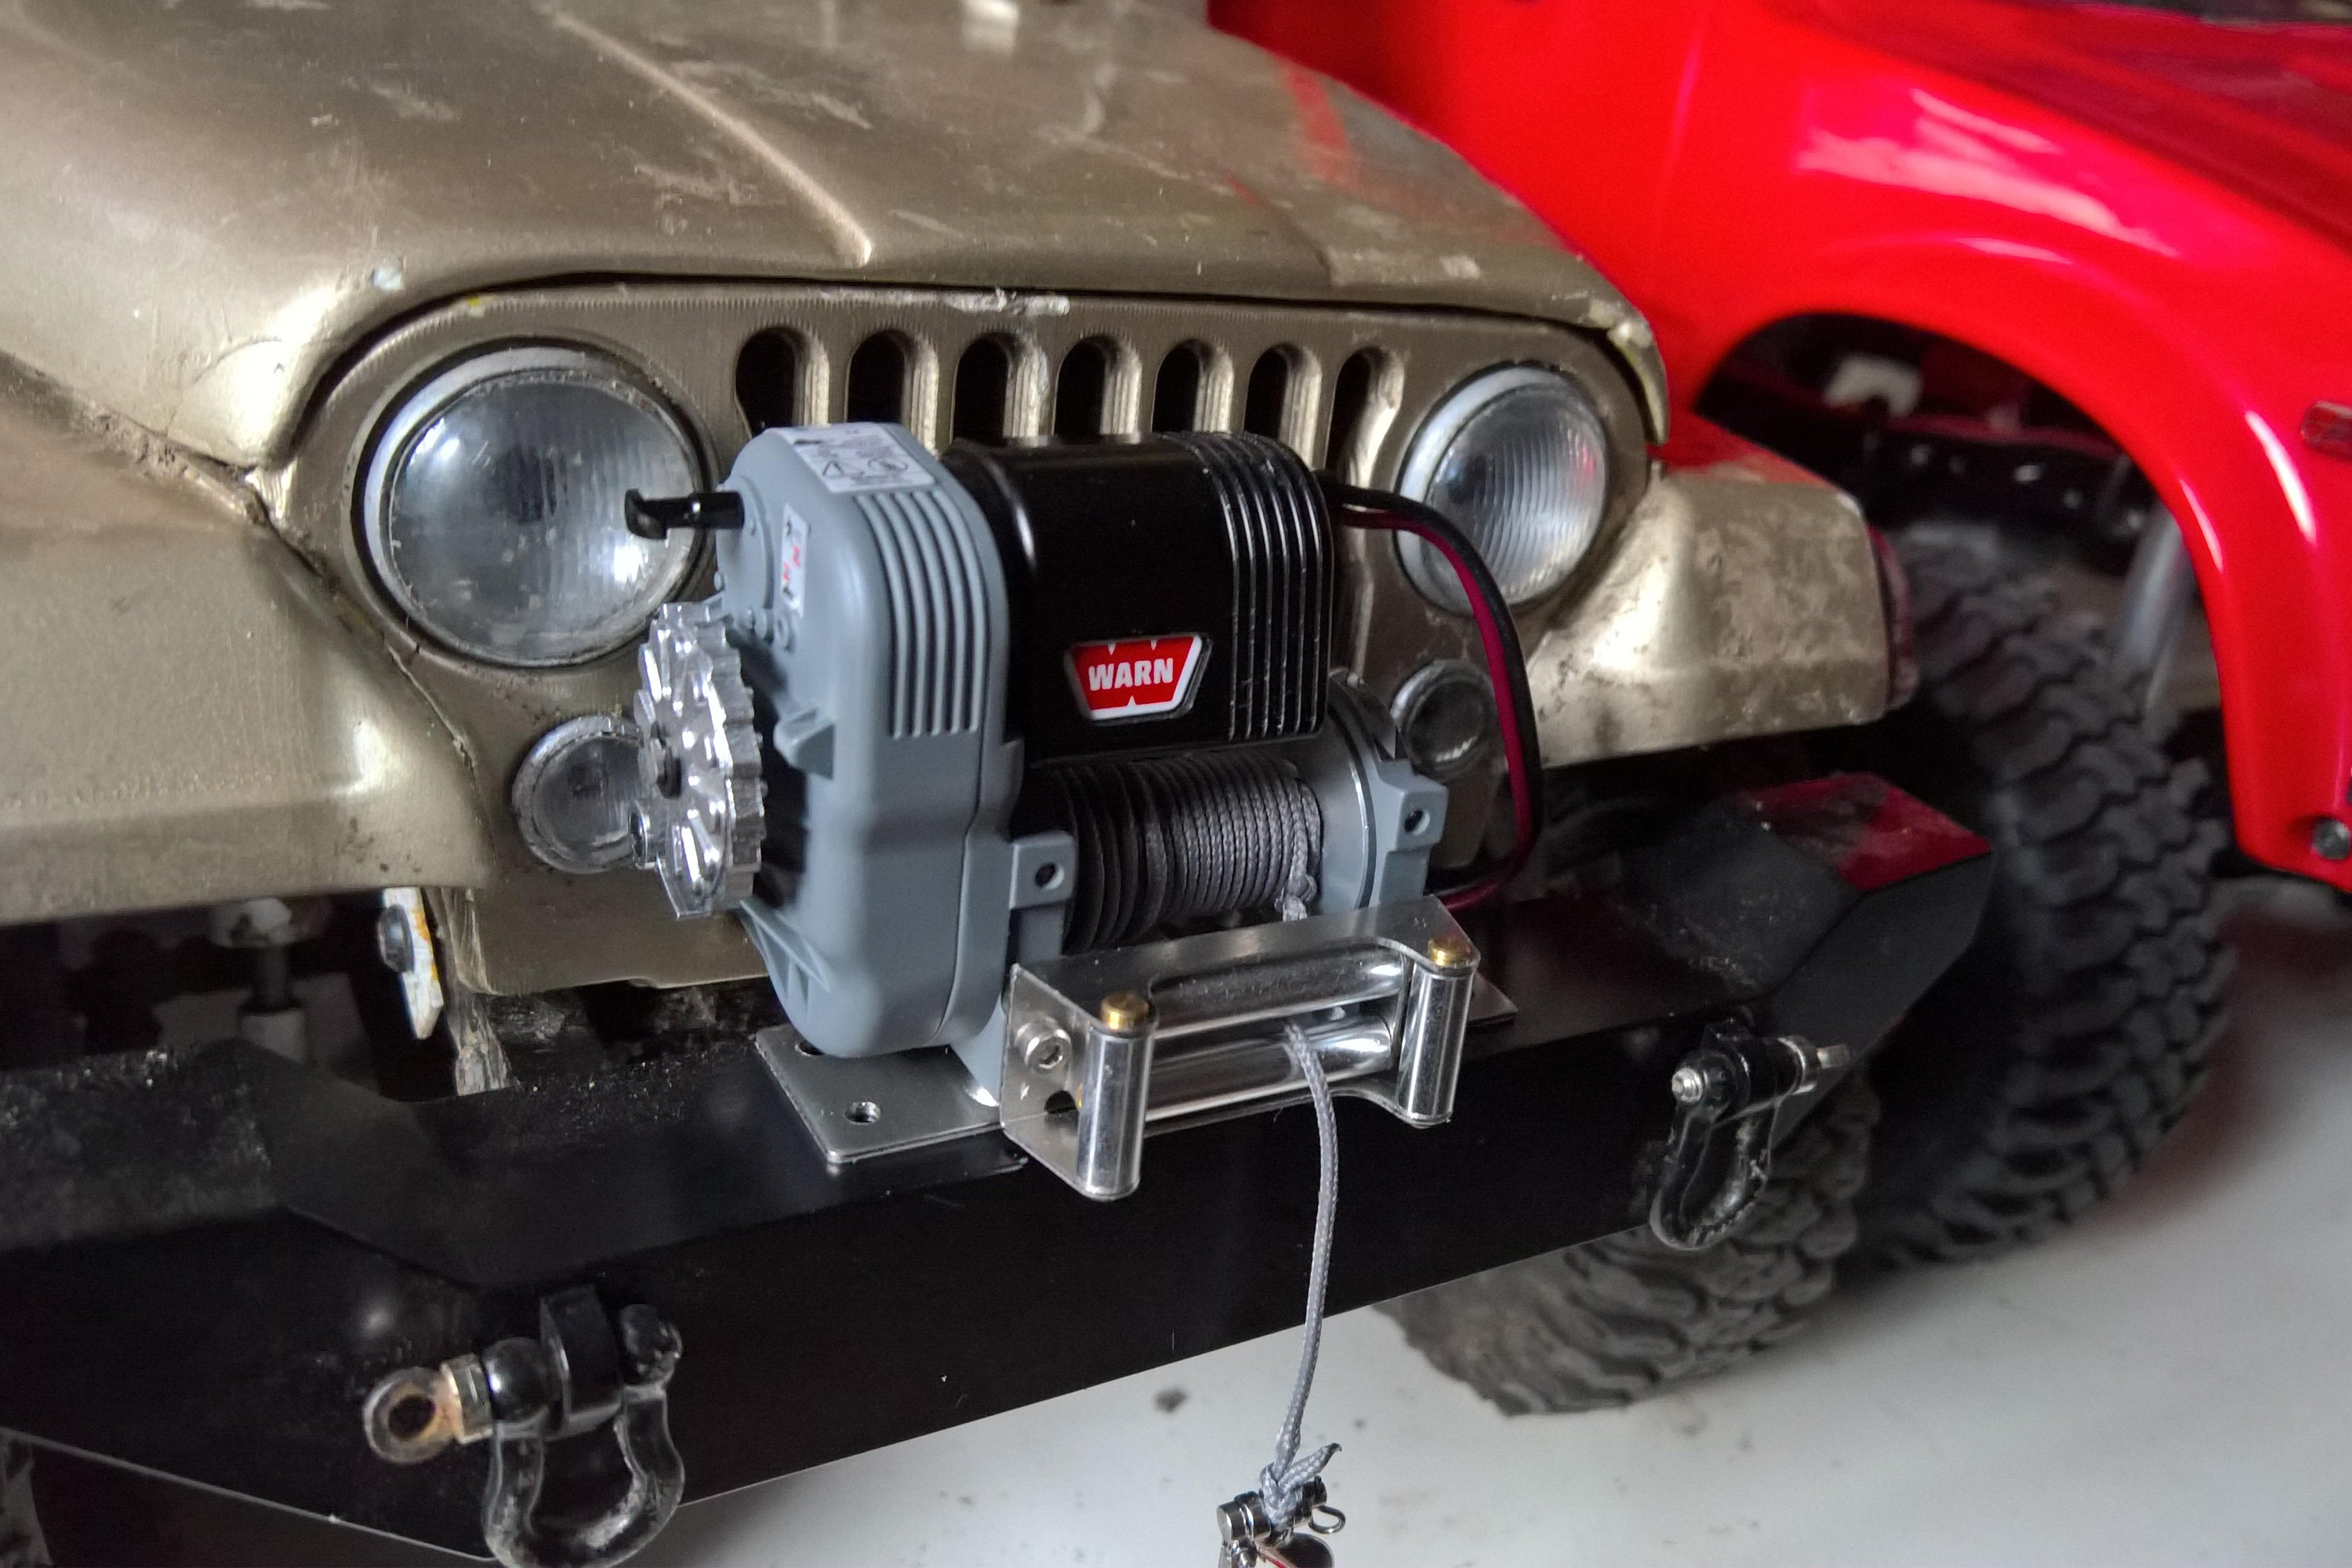 Warn 8274 Winch Juragansynopsis Wiring Diagram Herm The Overdrive Guy 1 10 Scale Winchrc4wd